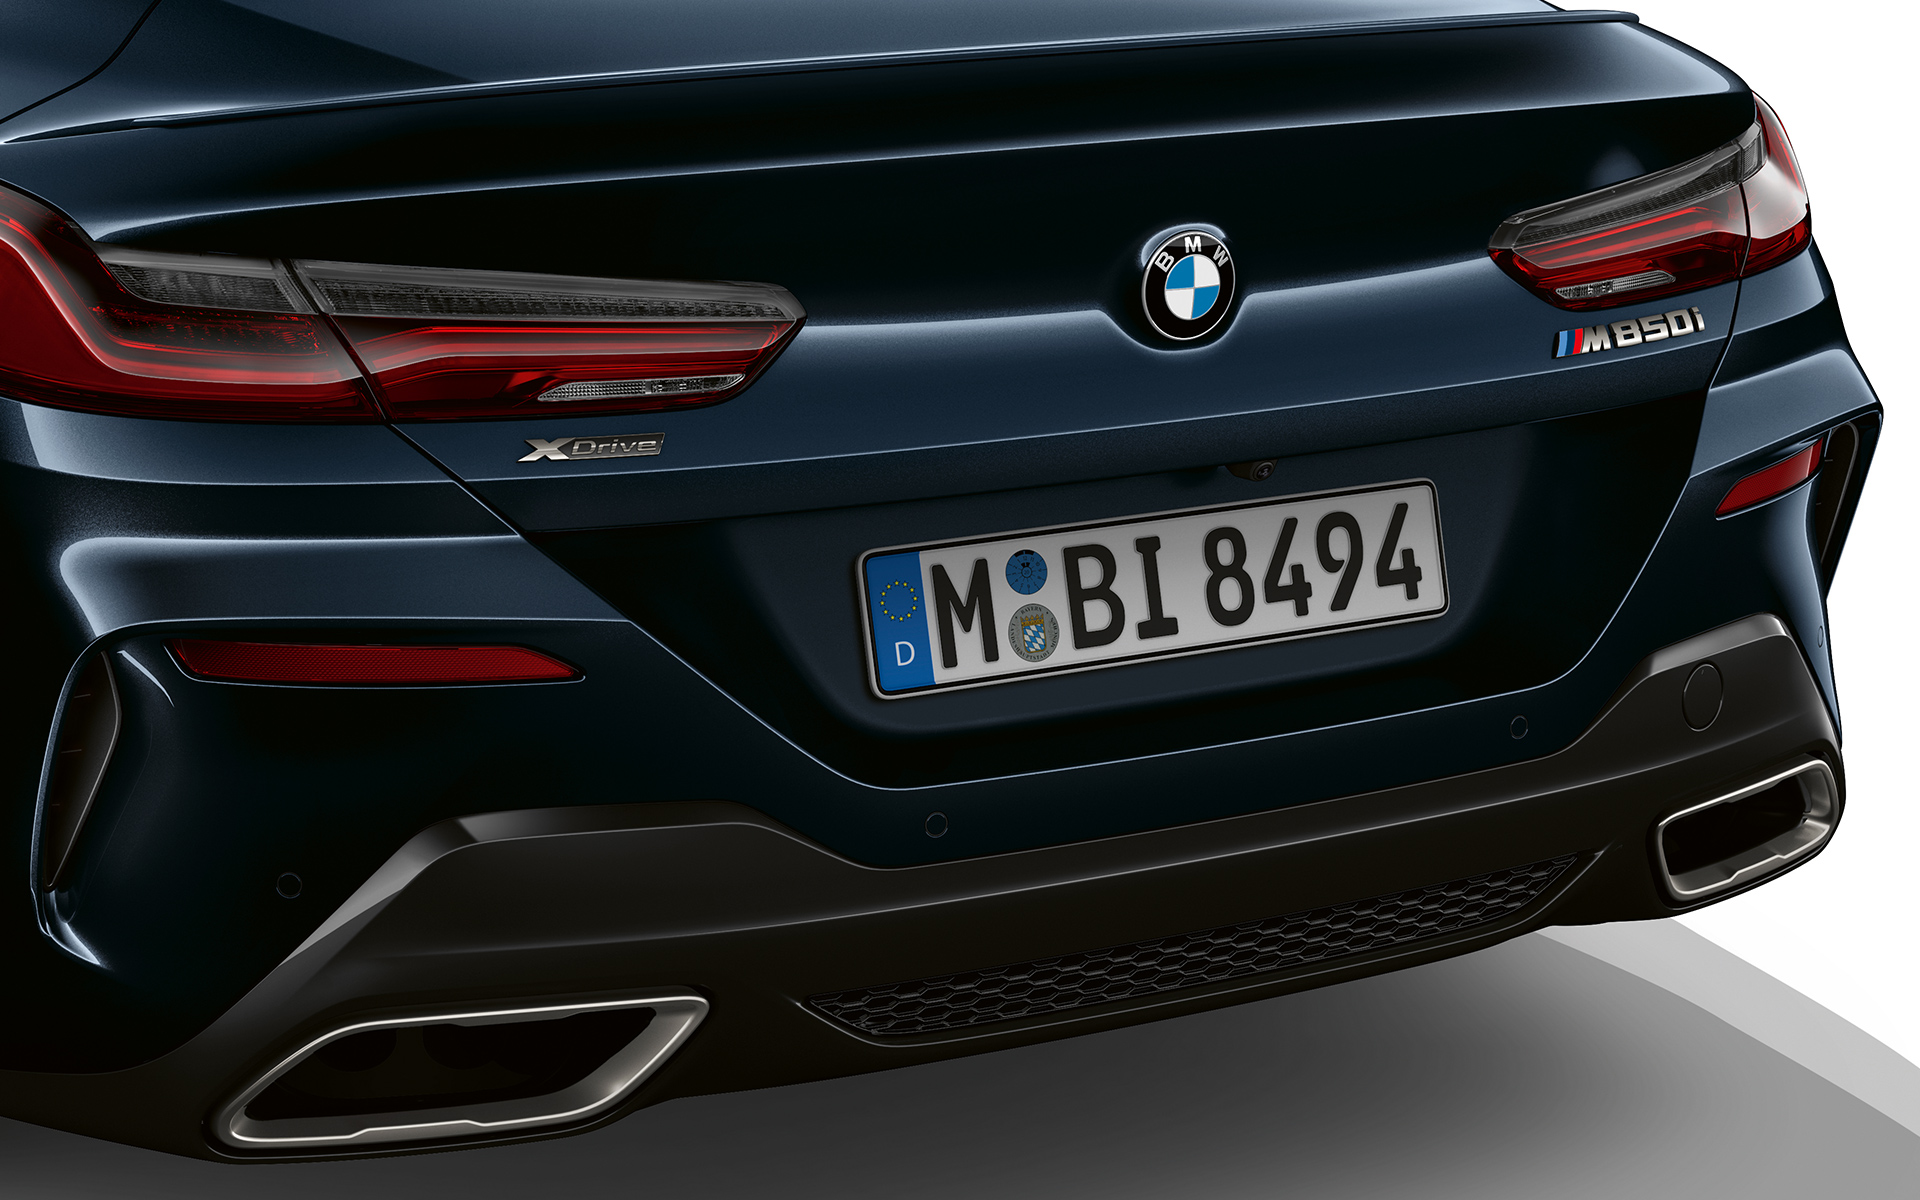 Rear view of the BMW M850i xDrive.